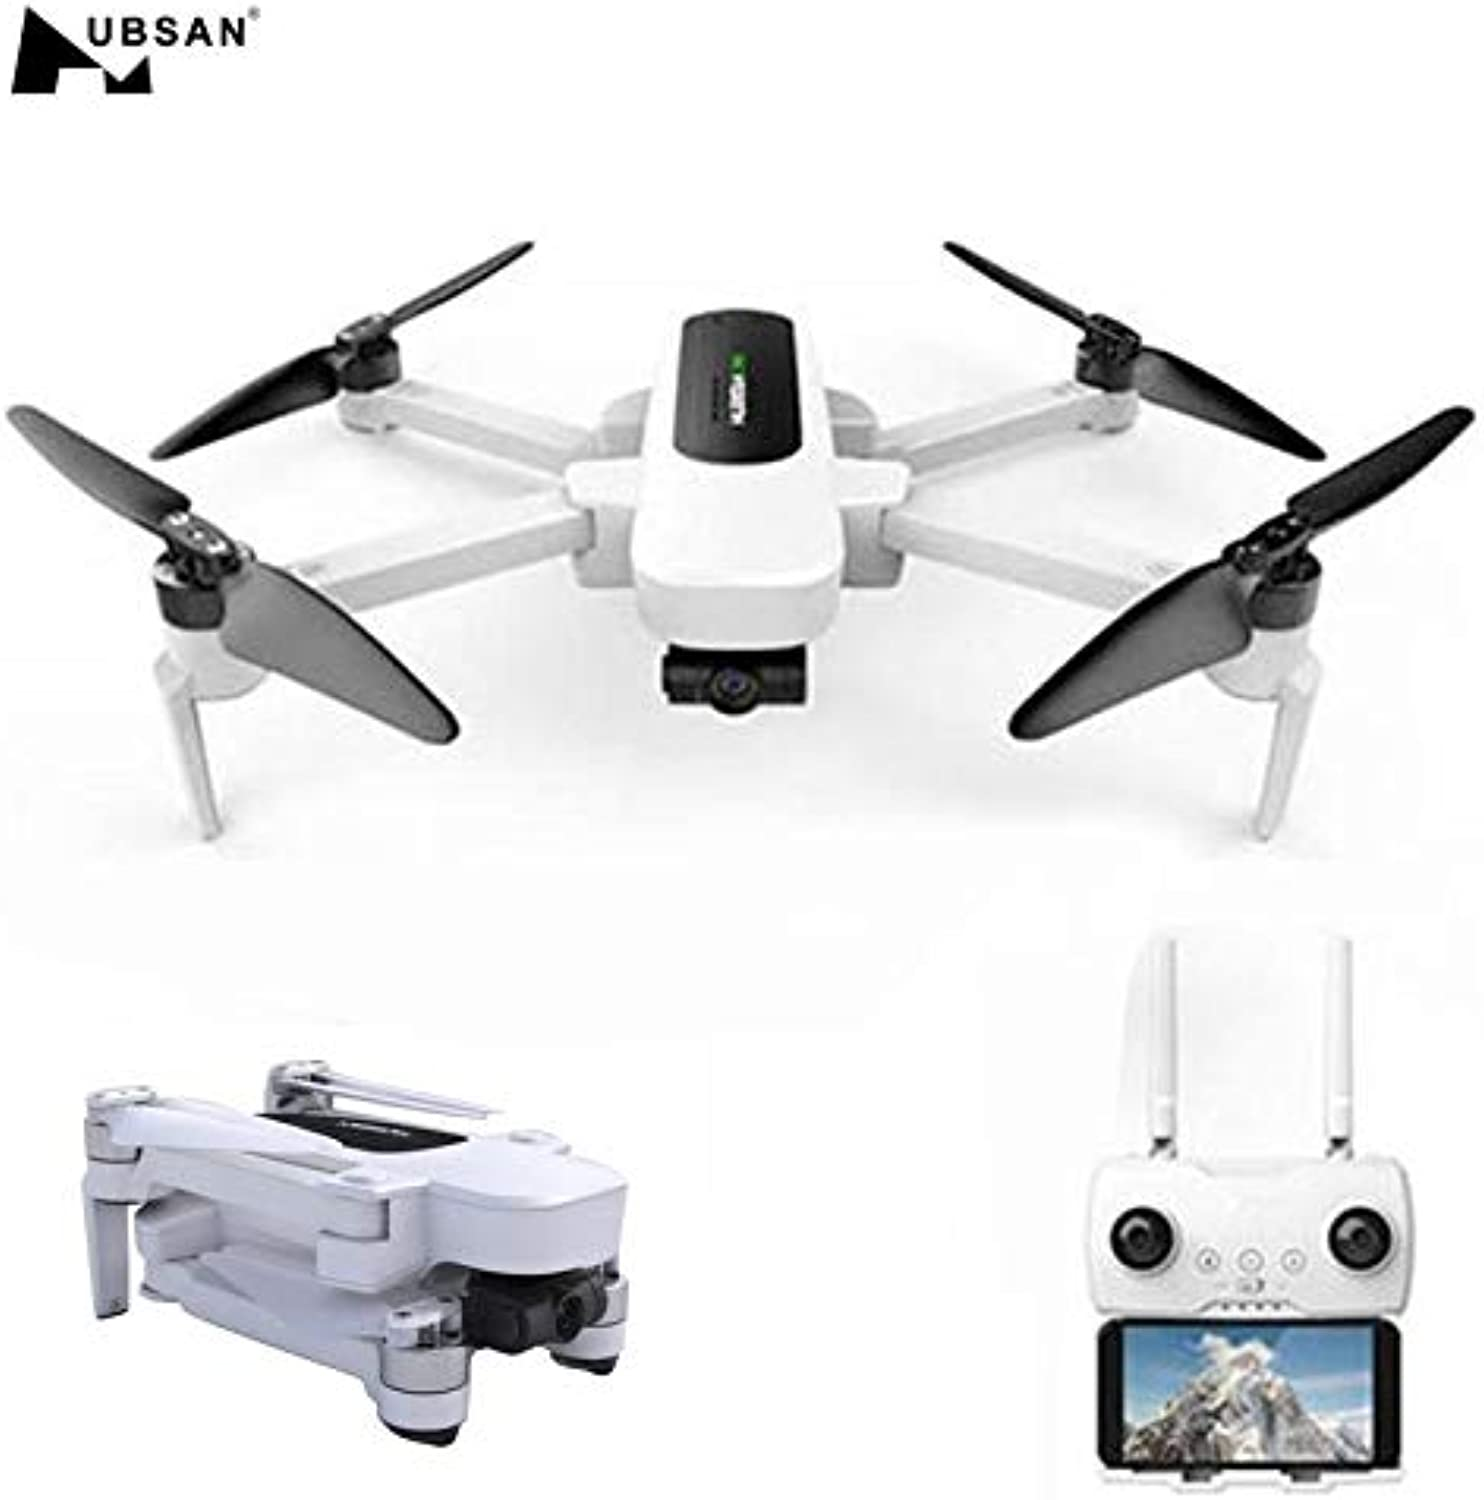 Generic in Stock Hubsan H117S Zino GPS 5.8G 1KM Foldable Arm FPV with 4K UHD Camera 3Axis Gimbal RC Drone Quadcopter RTF FPV